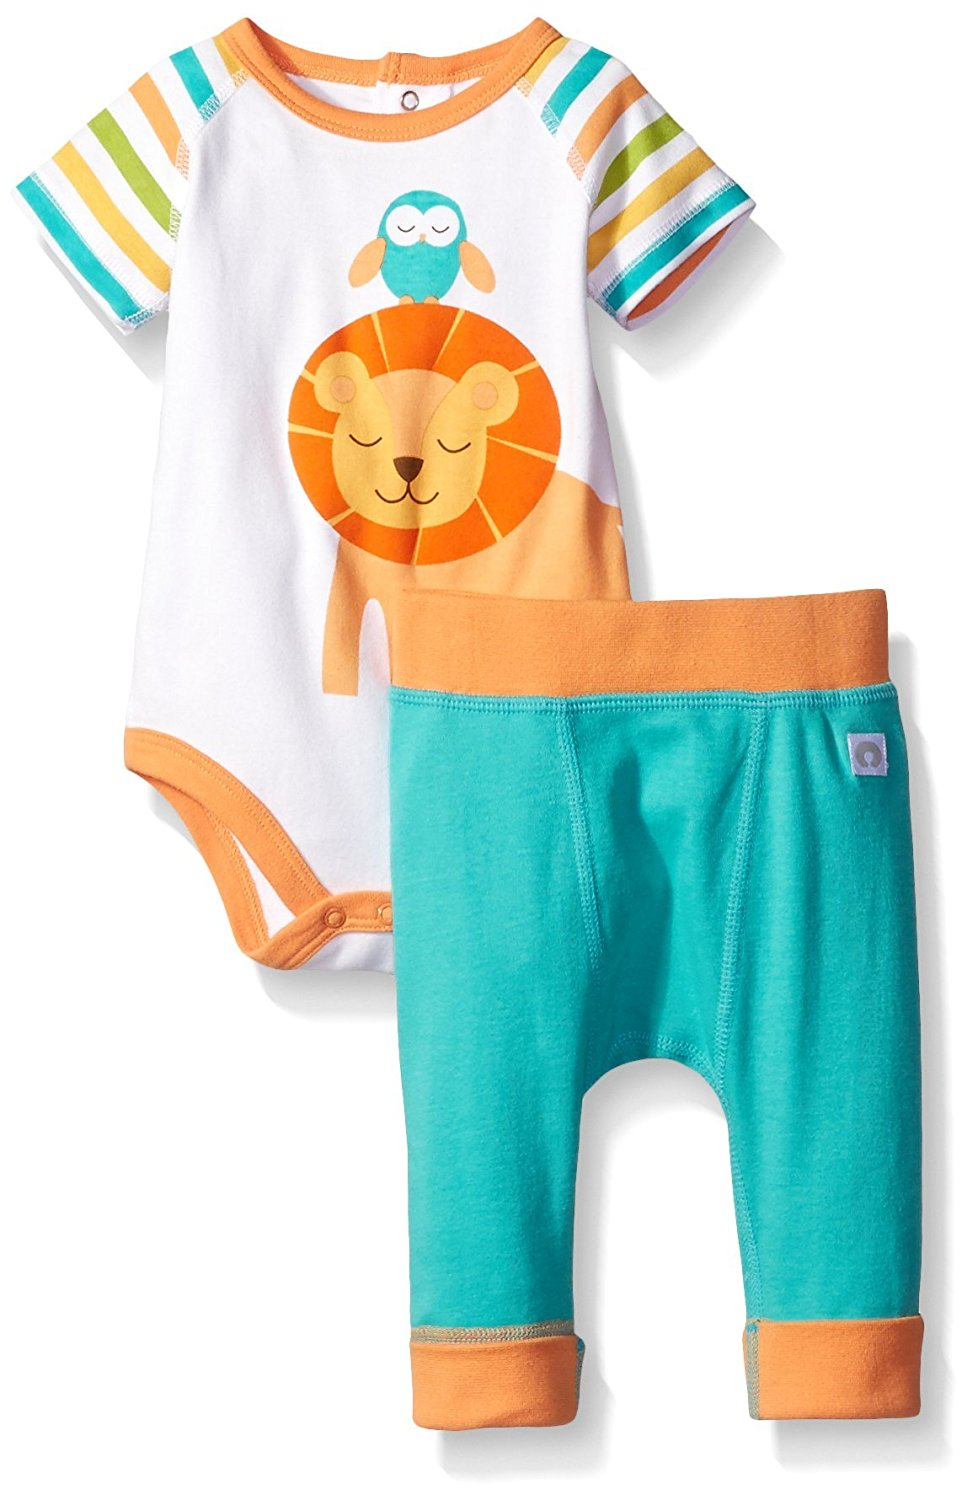 Boppy Baby 2 Piece Pant Set, Turquoise, 6 Months